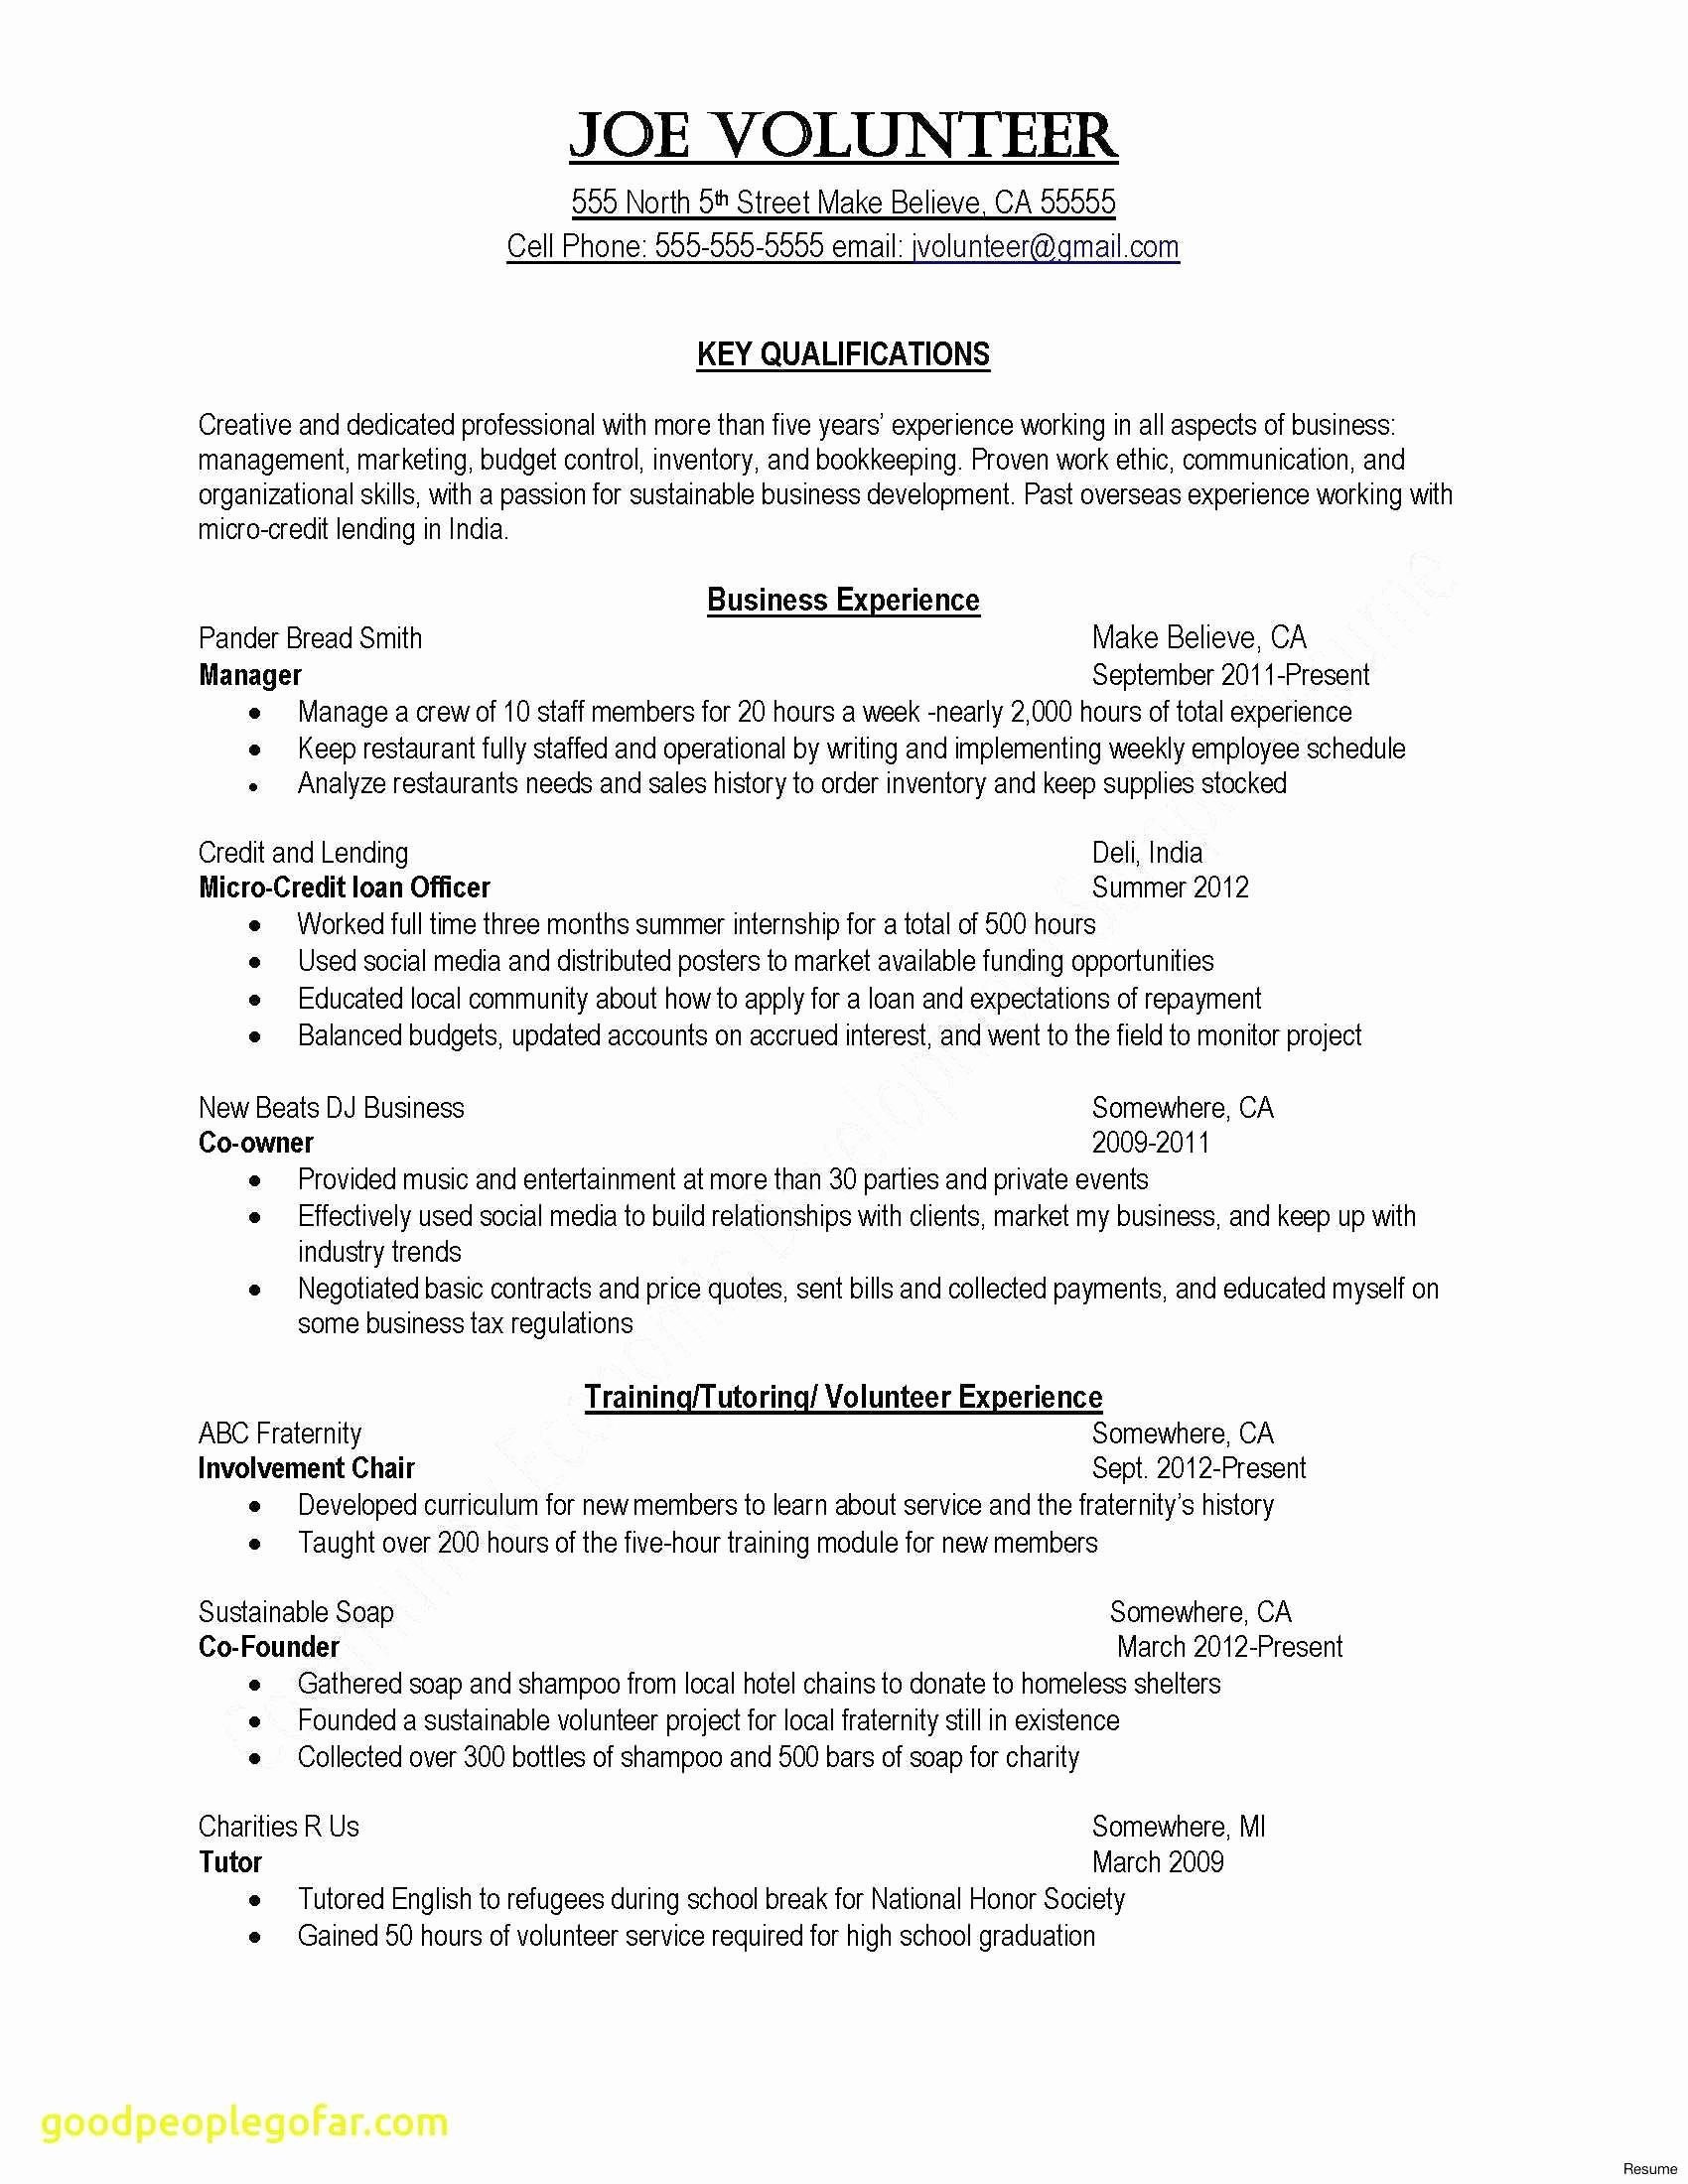 Interview Cover Letter Template - Resume Cover Letter Template Beautiful Elegant Sample College